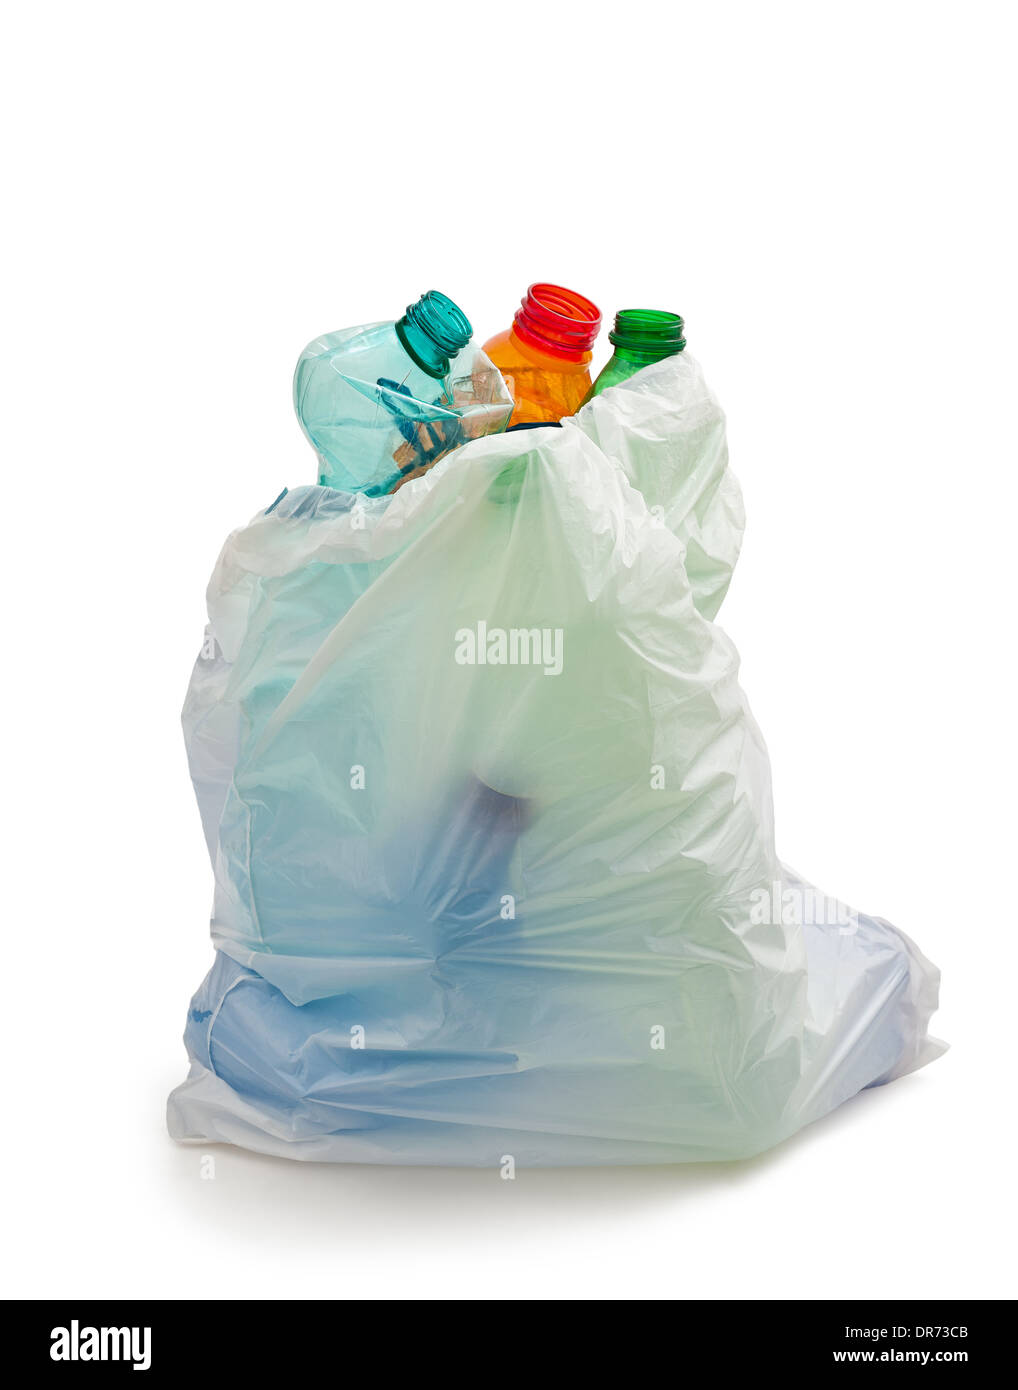 garbage bag with plastic bottles,recycling concept - Stock Image